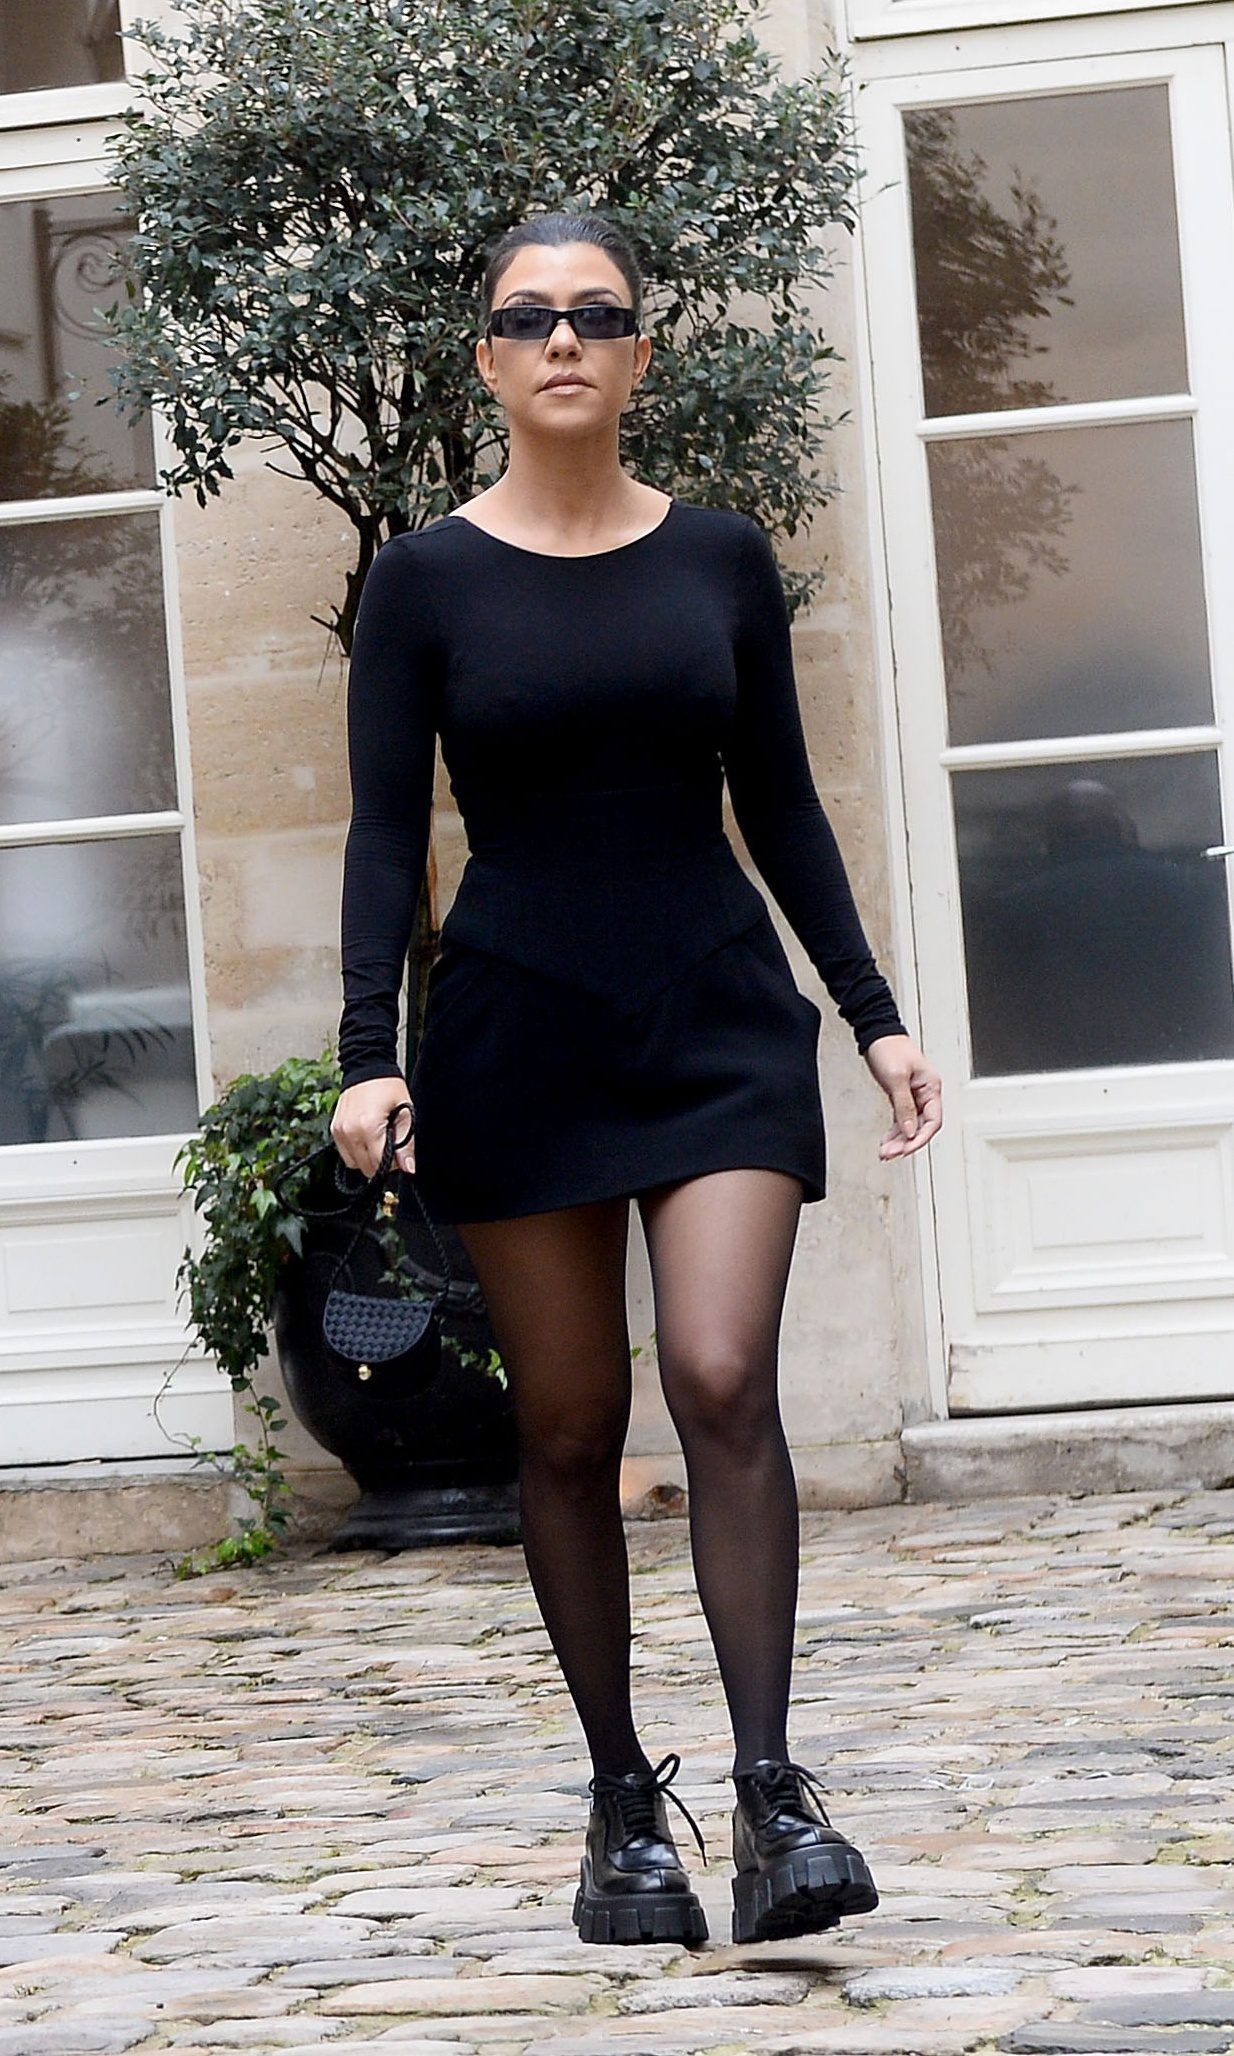 Kim Kardashian and sister Kourtney Kardashian arrive at Le Flore Cafe in Paris